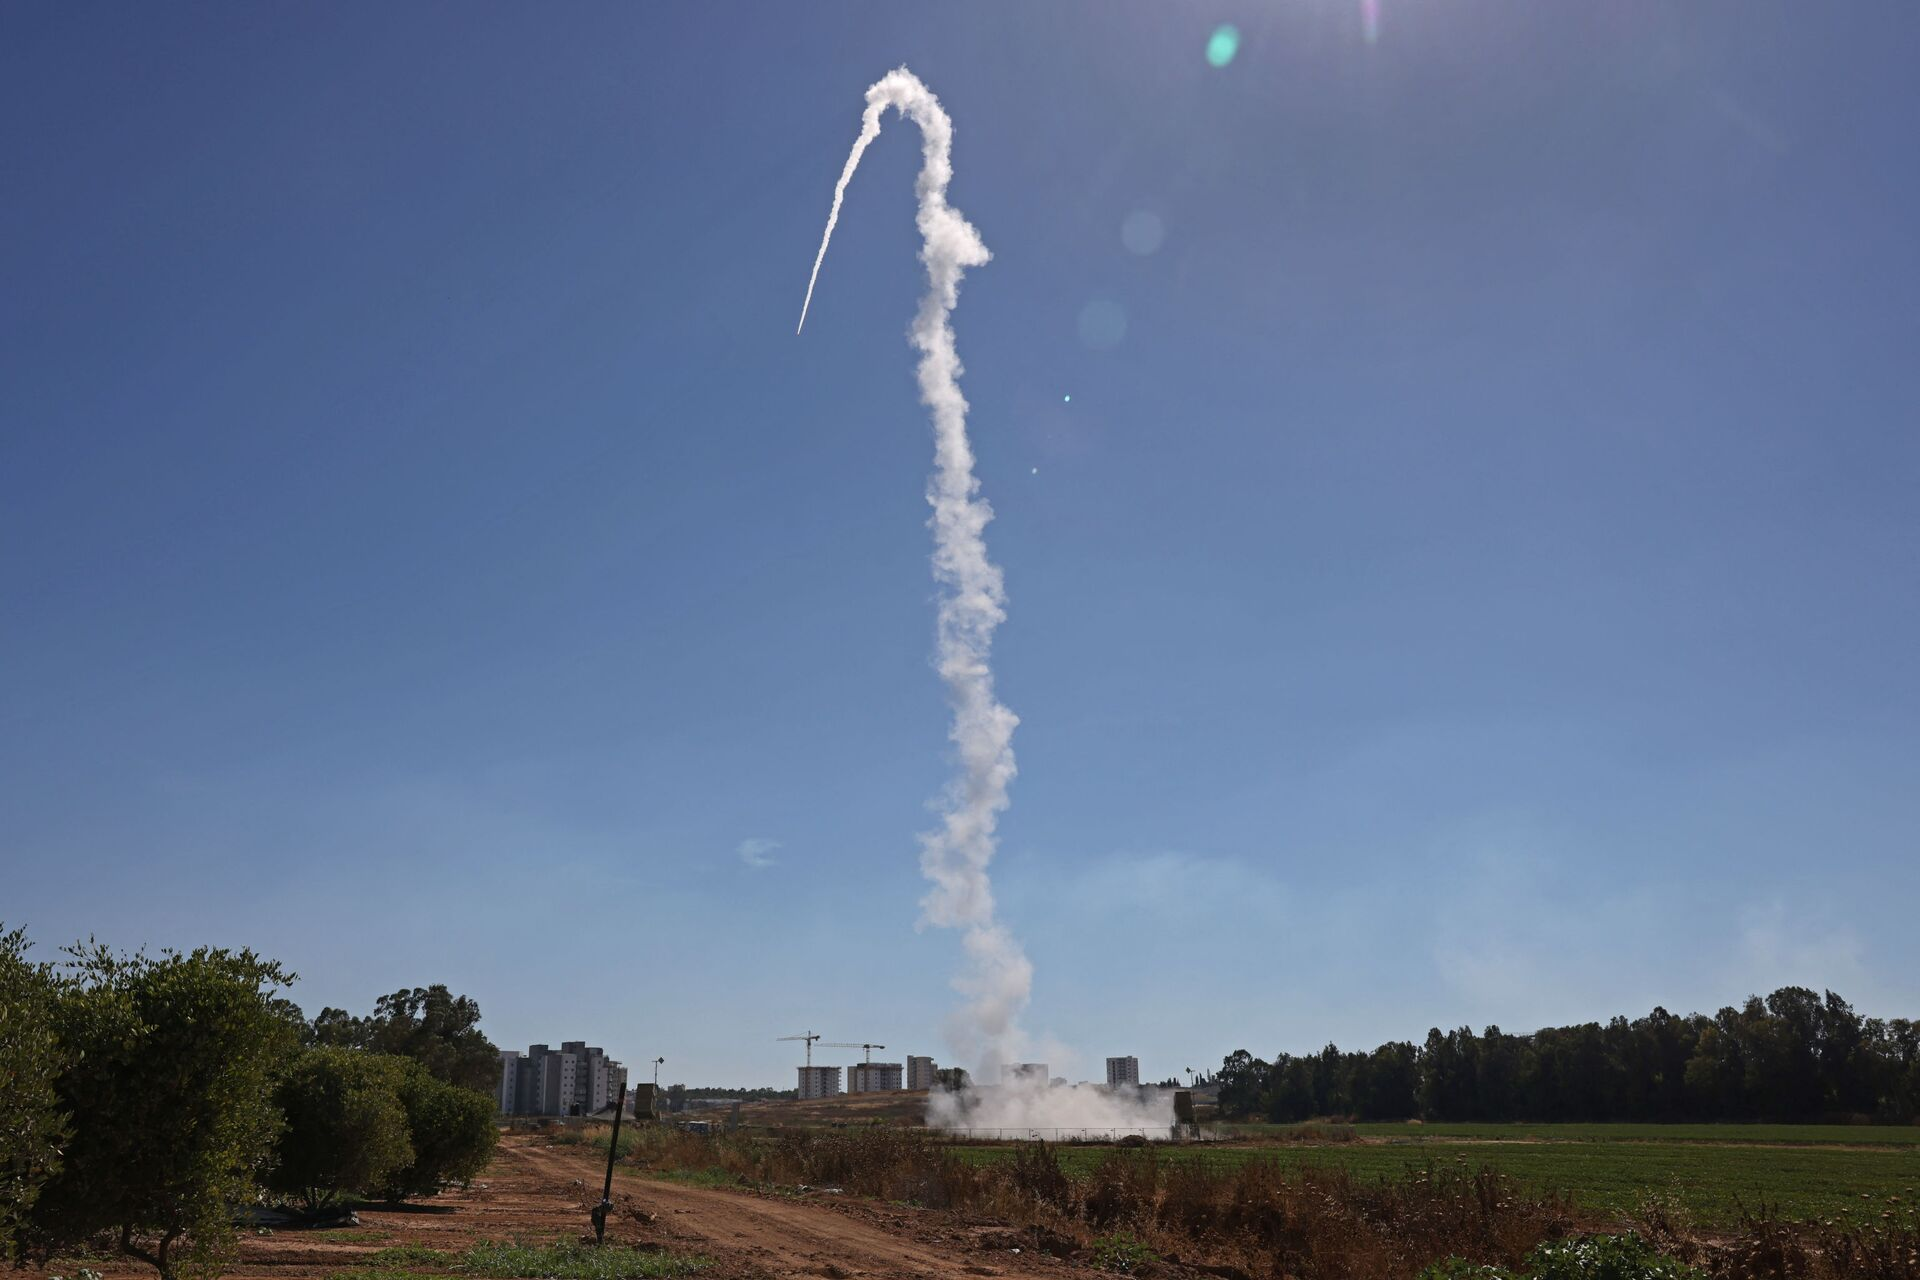 Israel's Iron Dome aerial defence system is launched to intercept rockets launched from the Gaza Strip, above the southern Israeli city of Sderot, on May 18, 2021. - Sputnik International, 1920, 07.09.2021